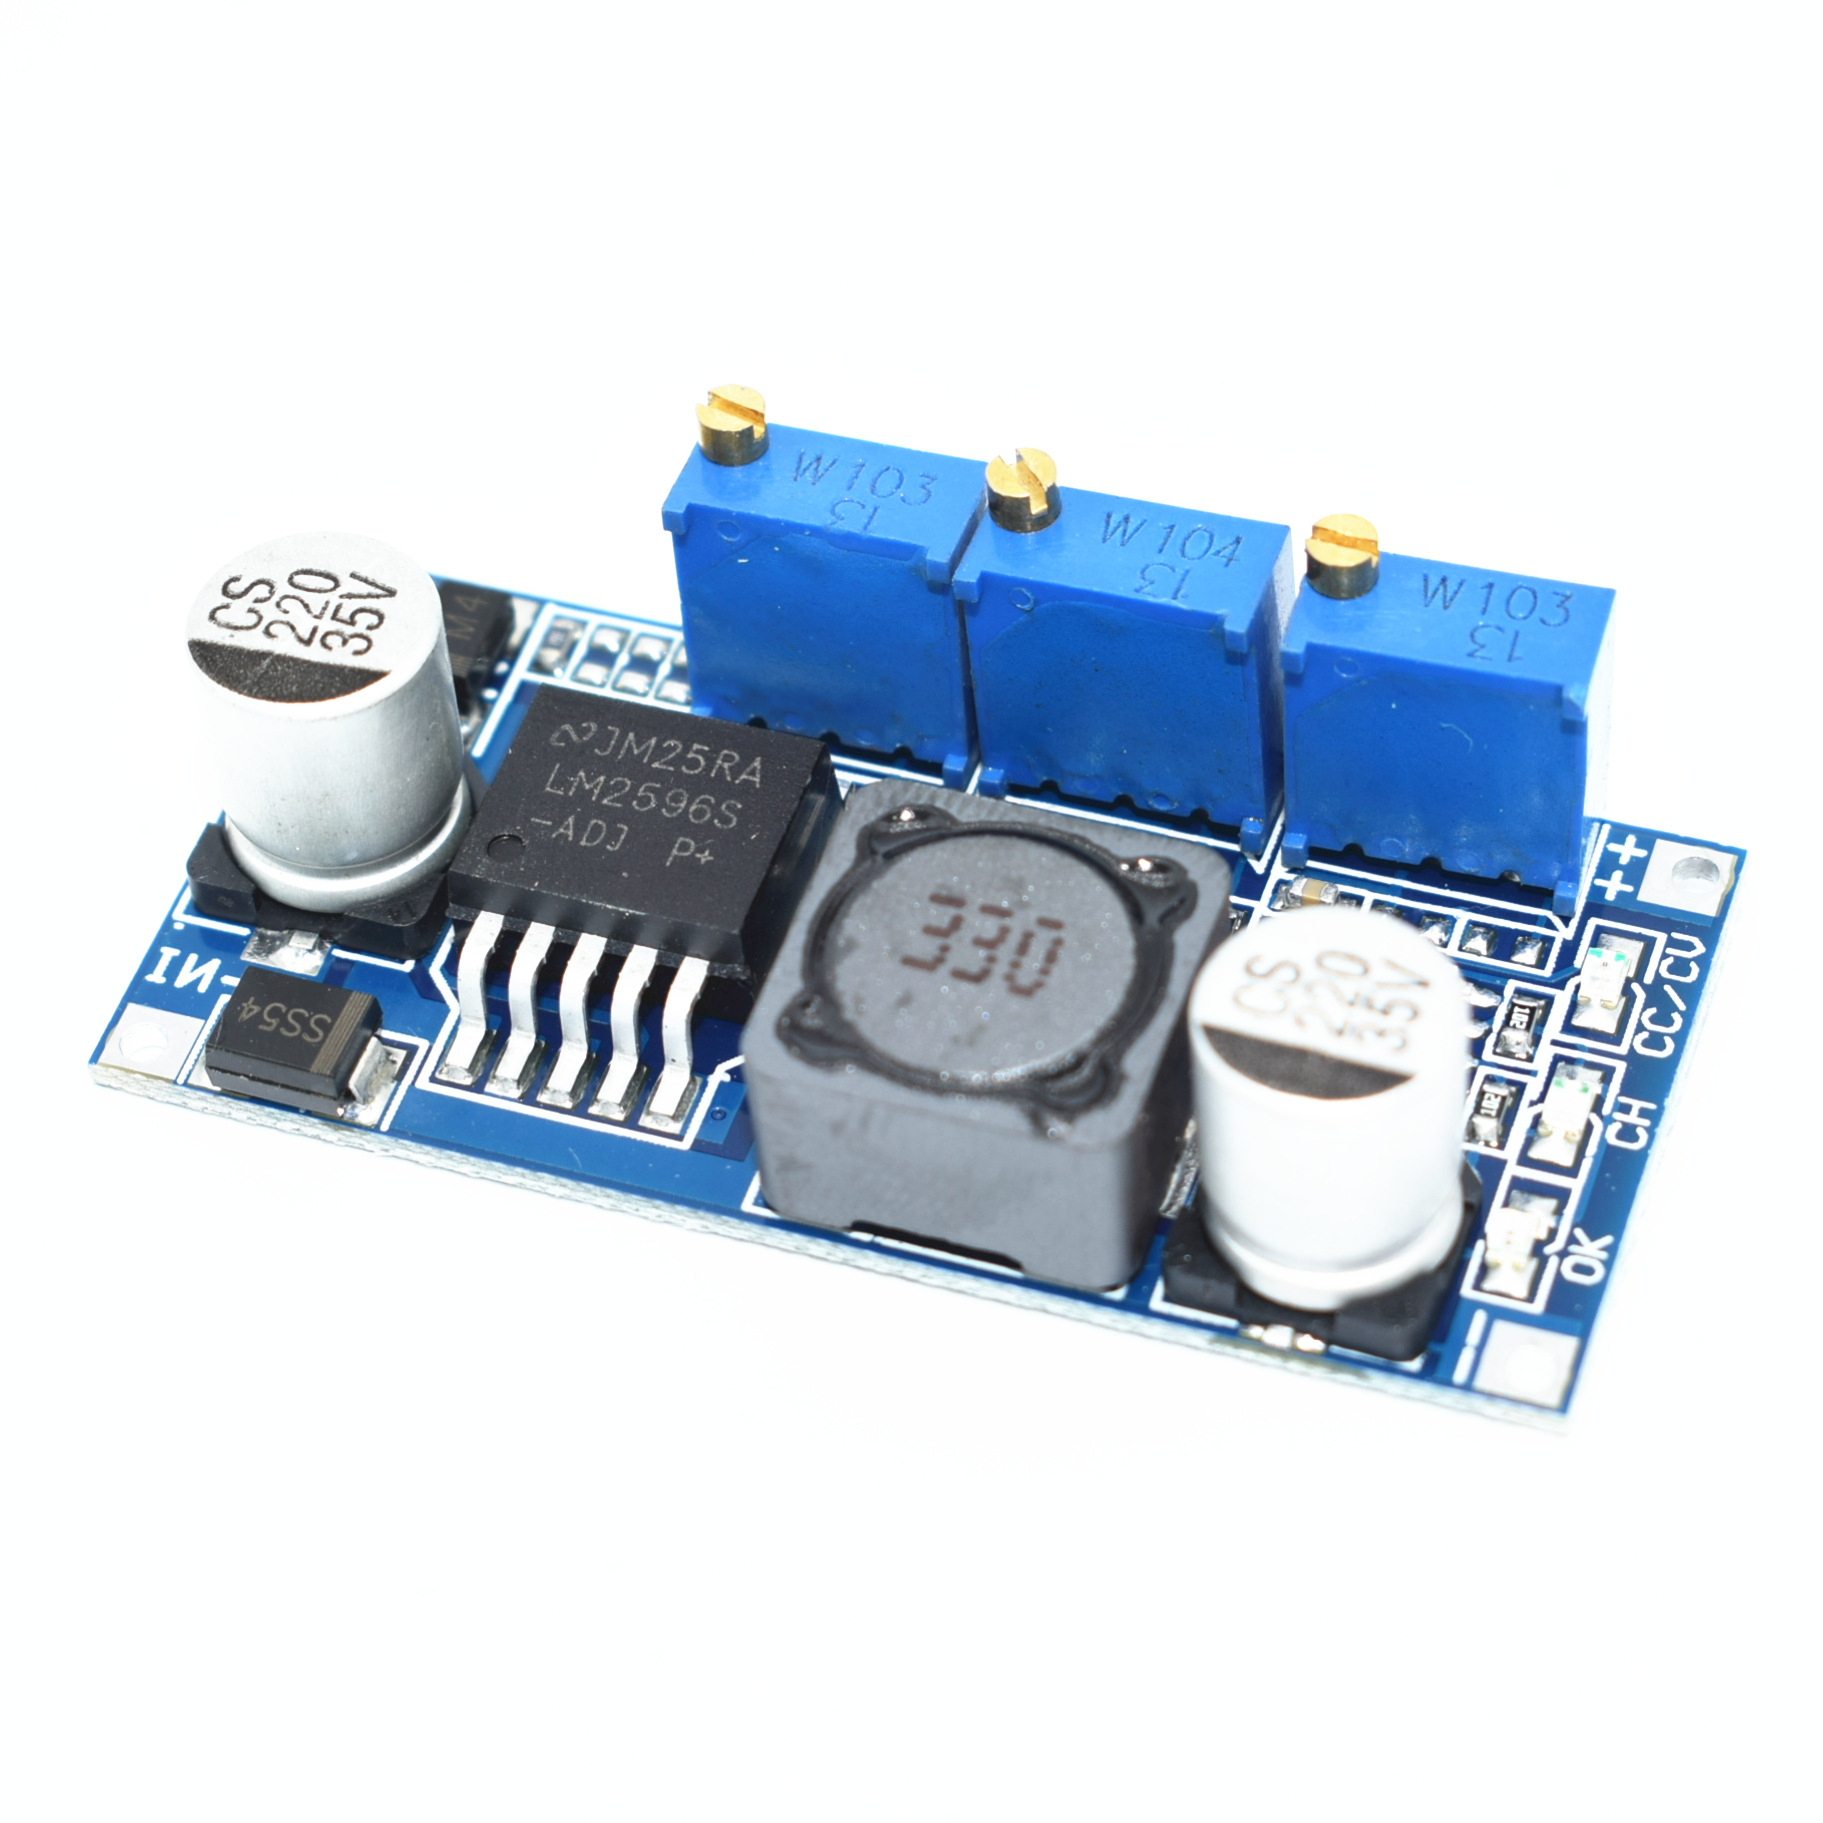 Usd 553 Lm2596 Led Driver 3a Constant Current Voltage Circuit Lithium Ion Battery Charging Power Supply Module